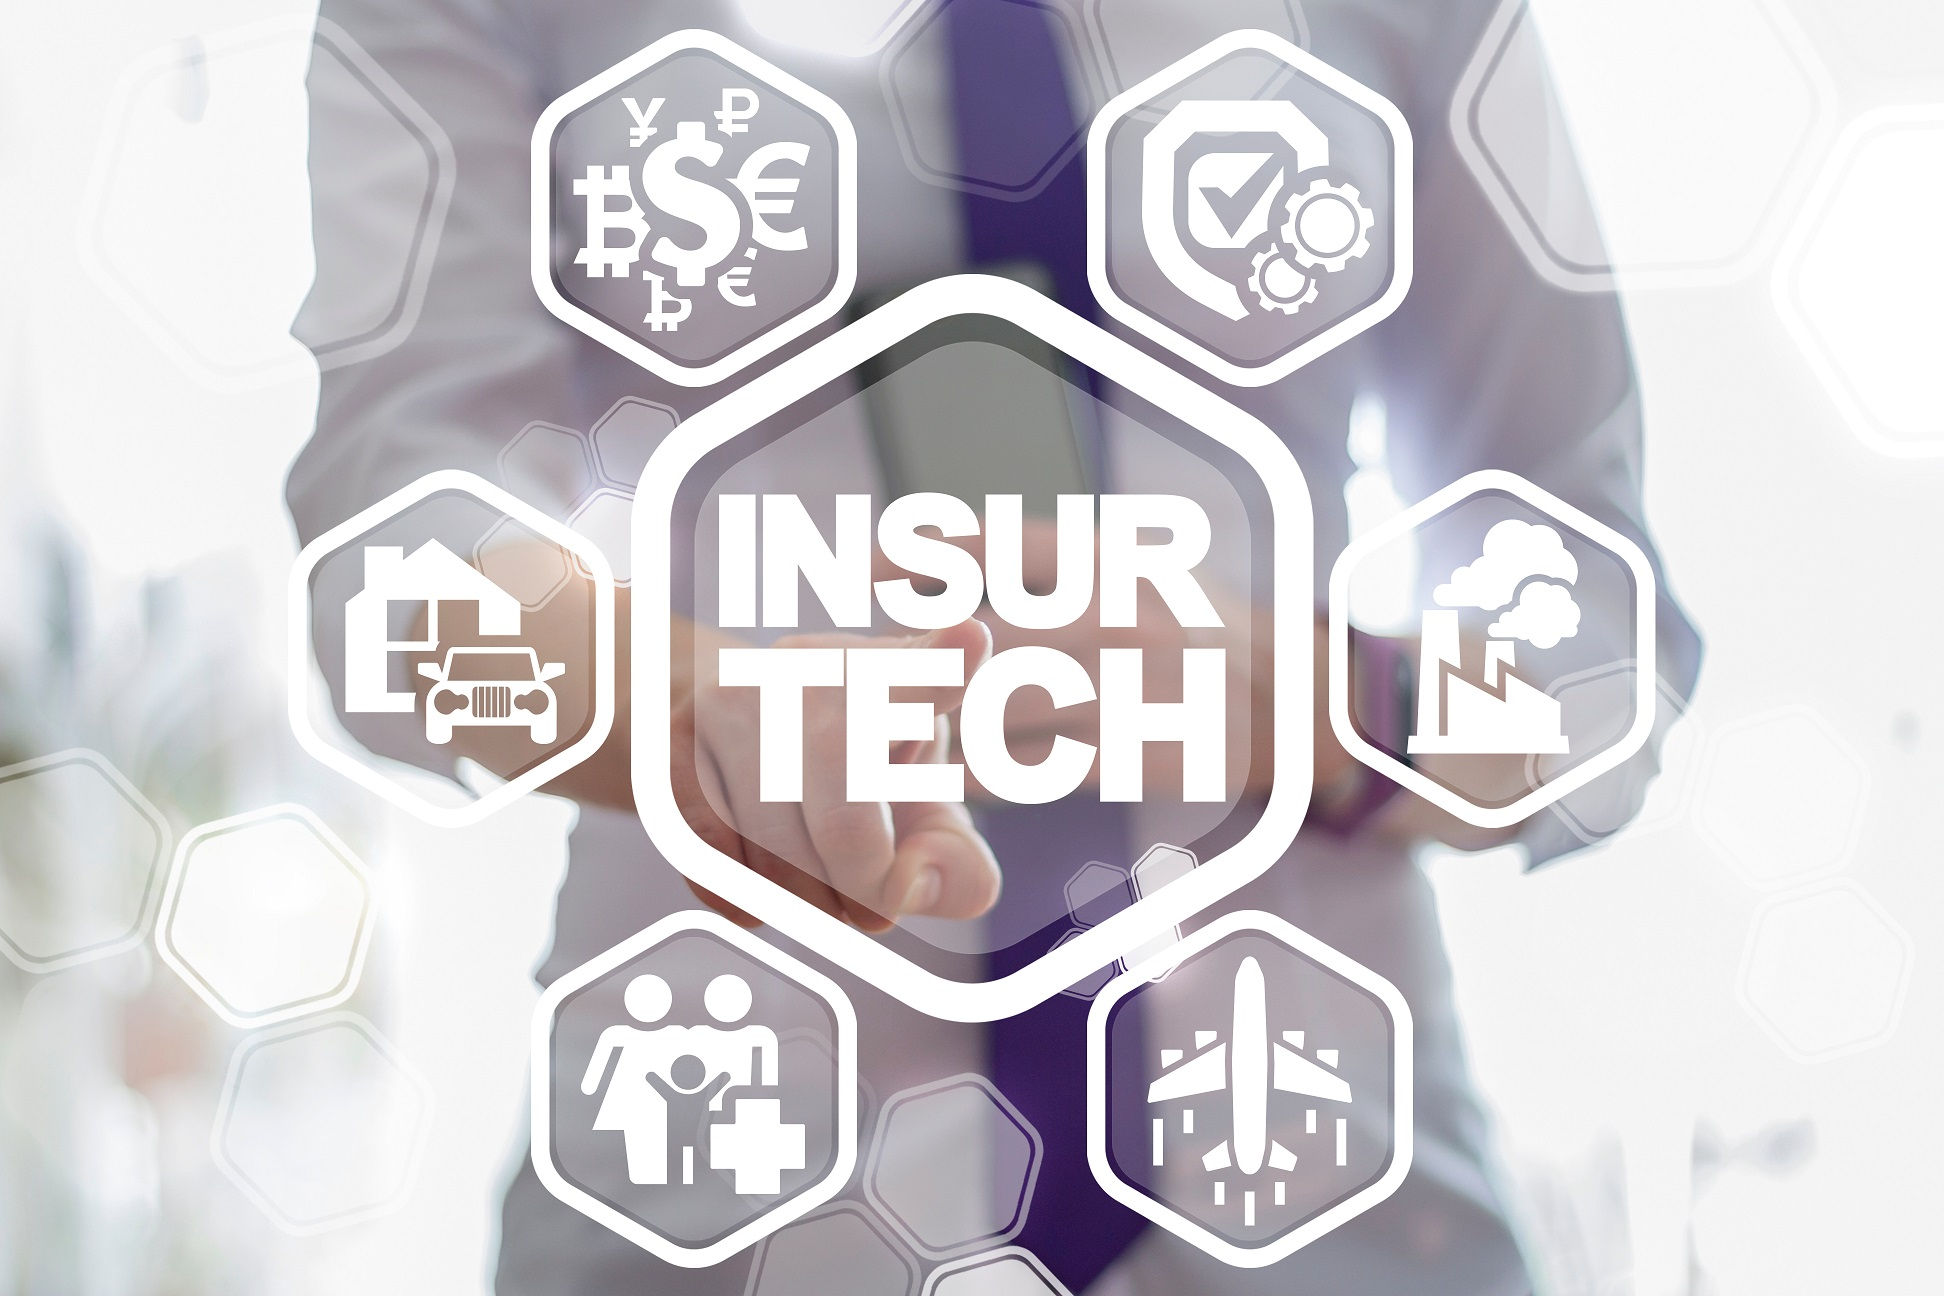 Digitalization is at the forefront of Zurich Insurance's plan, says GlobalData